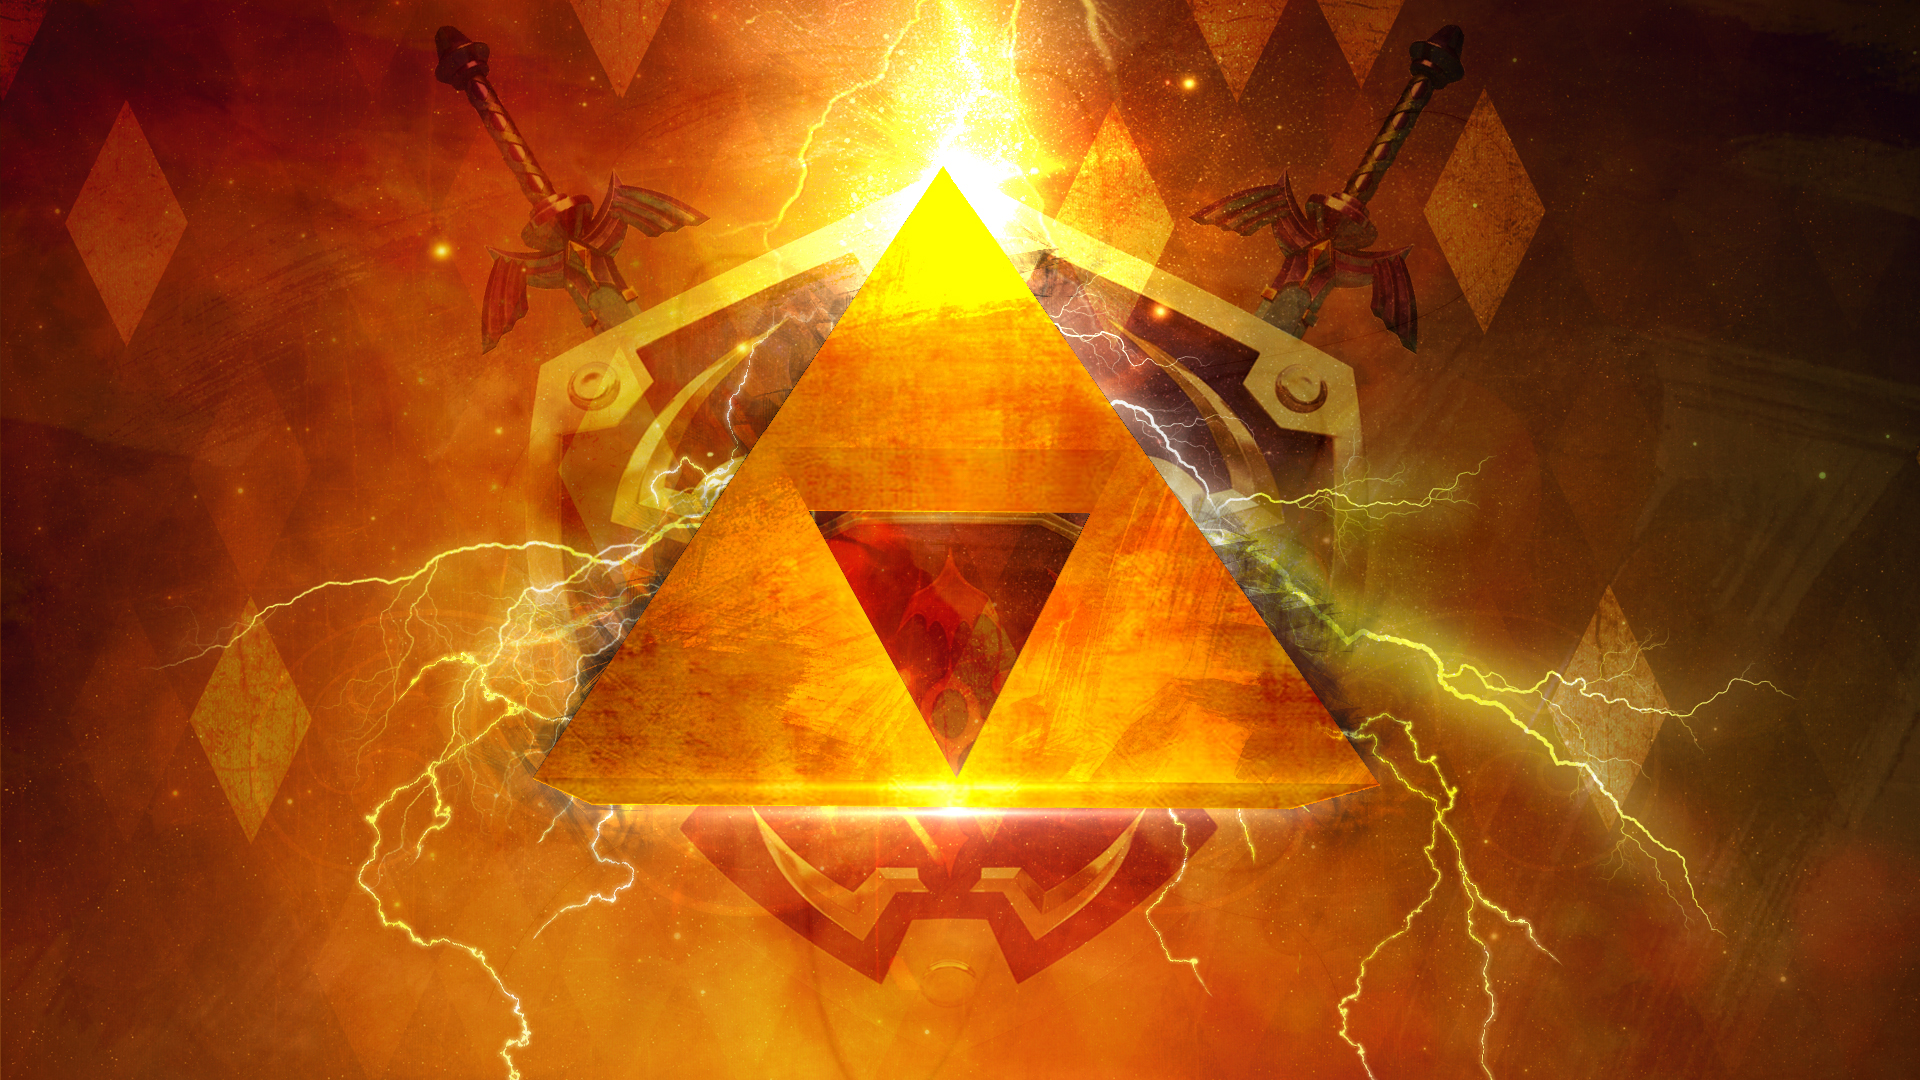 The Power of Triforce by Anttrex